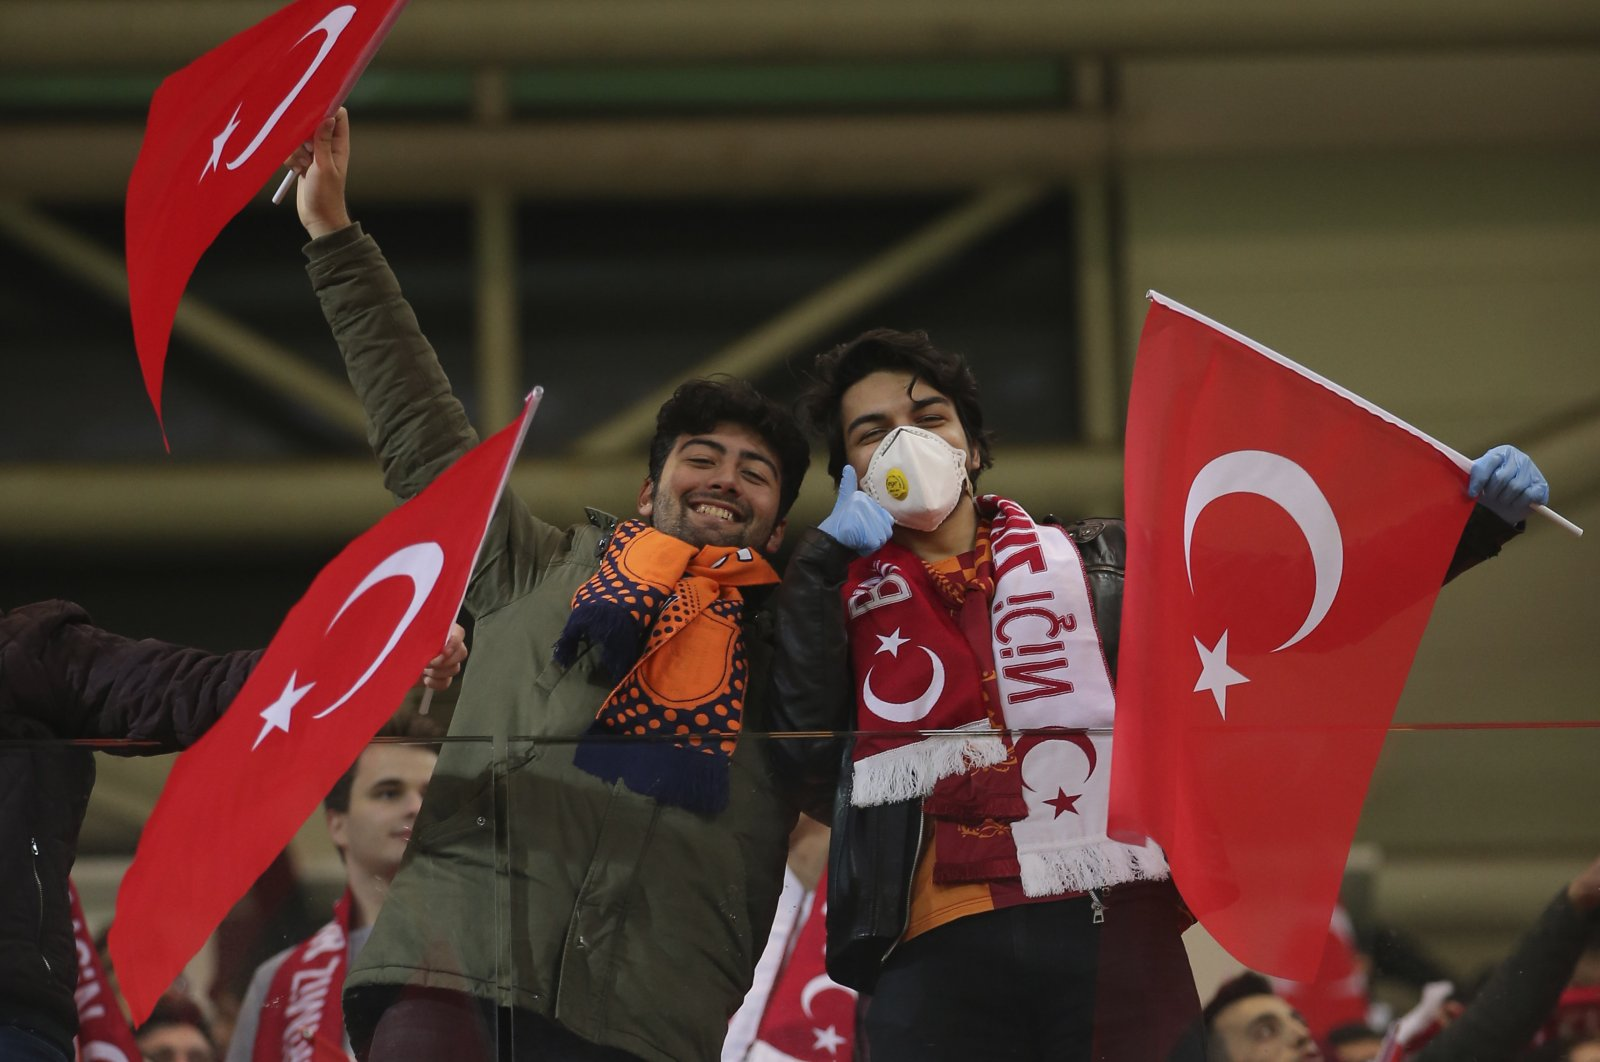 Spectators, some wearing masks because of the coronavirus outbreak, wave Turkish flags prior to the first leg of a Europa League top 16 soccer match between Başakşehir and Copenhagen, in Istanbul, March 12, 2020. (AP Photo)